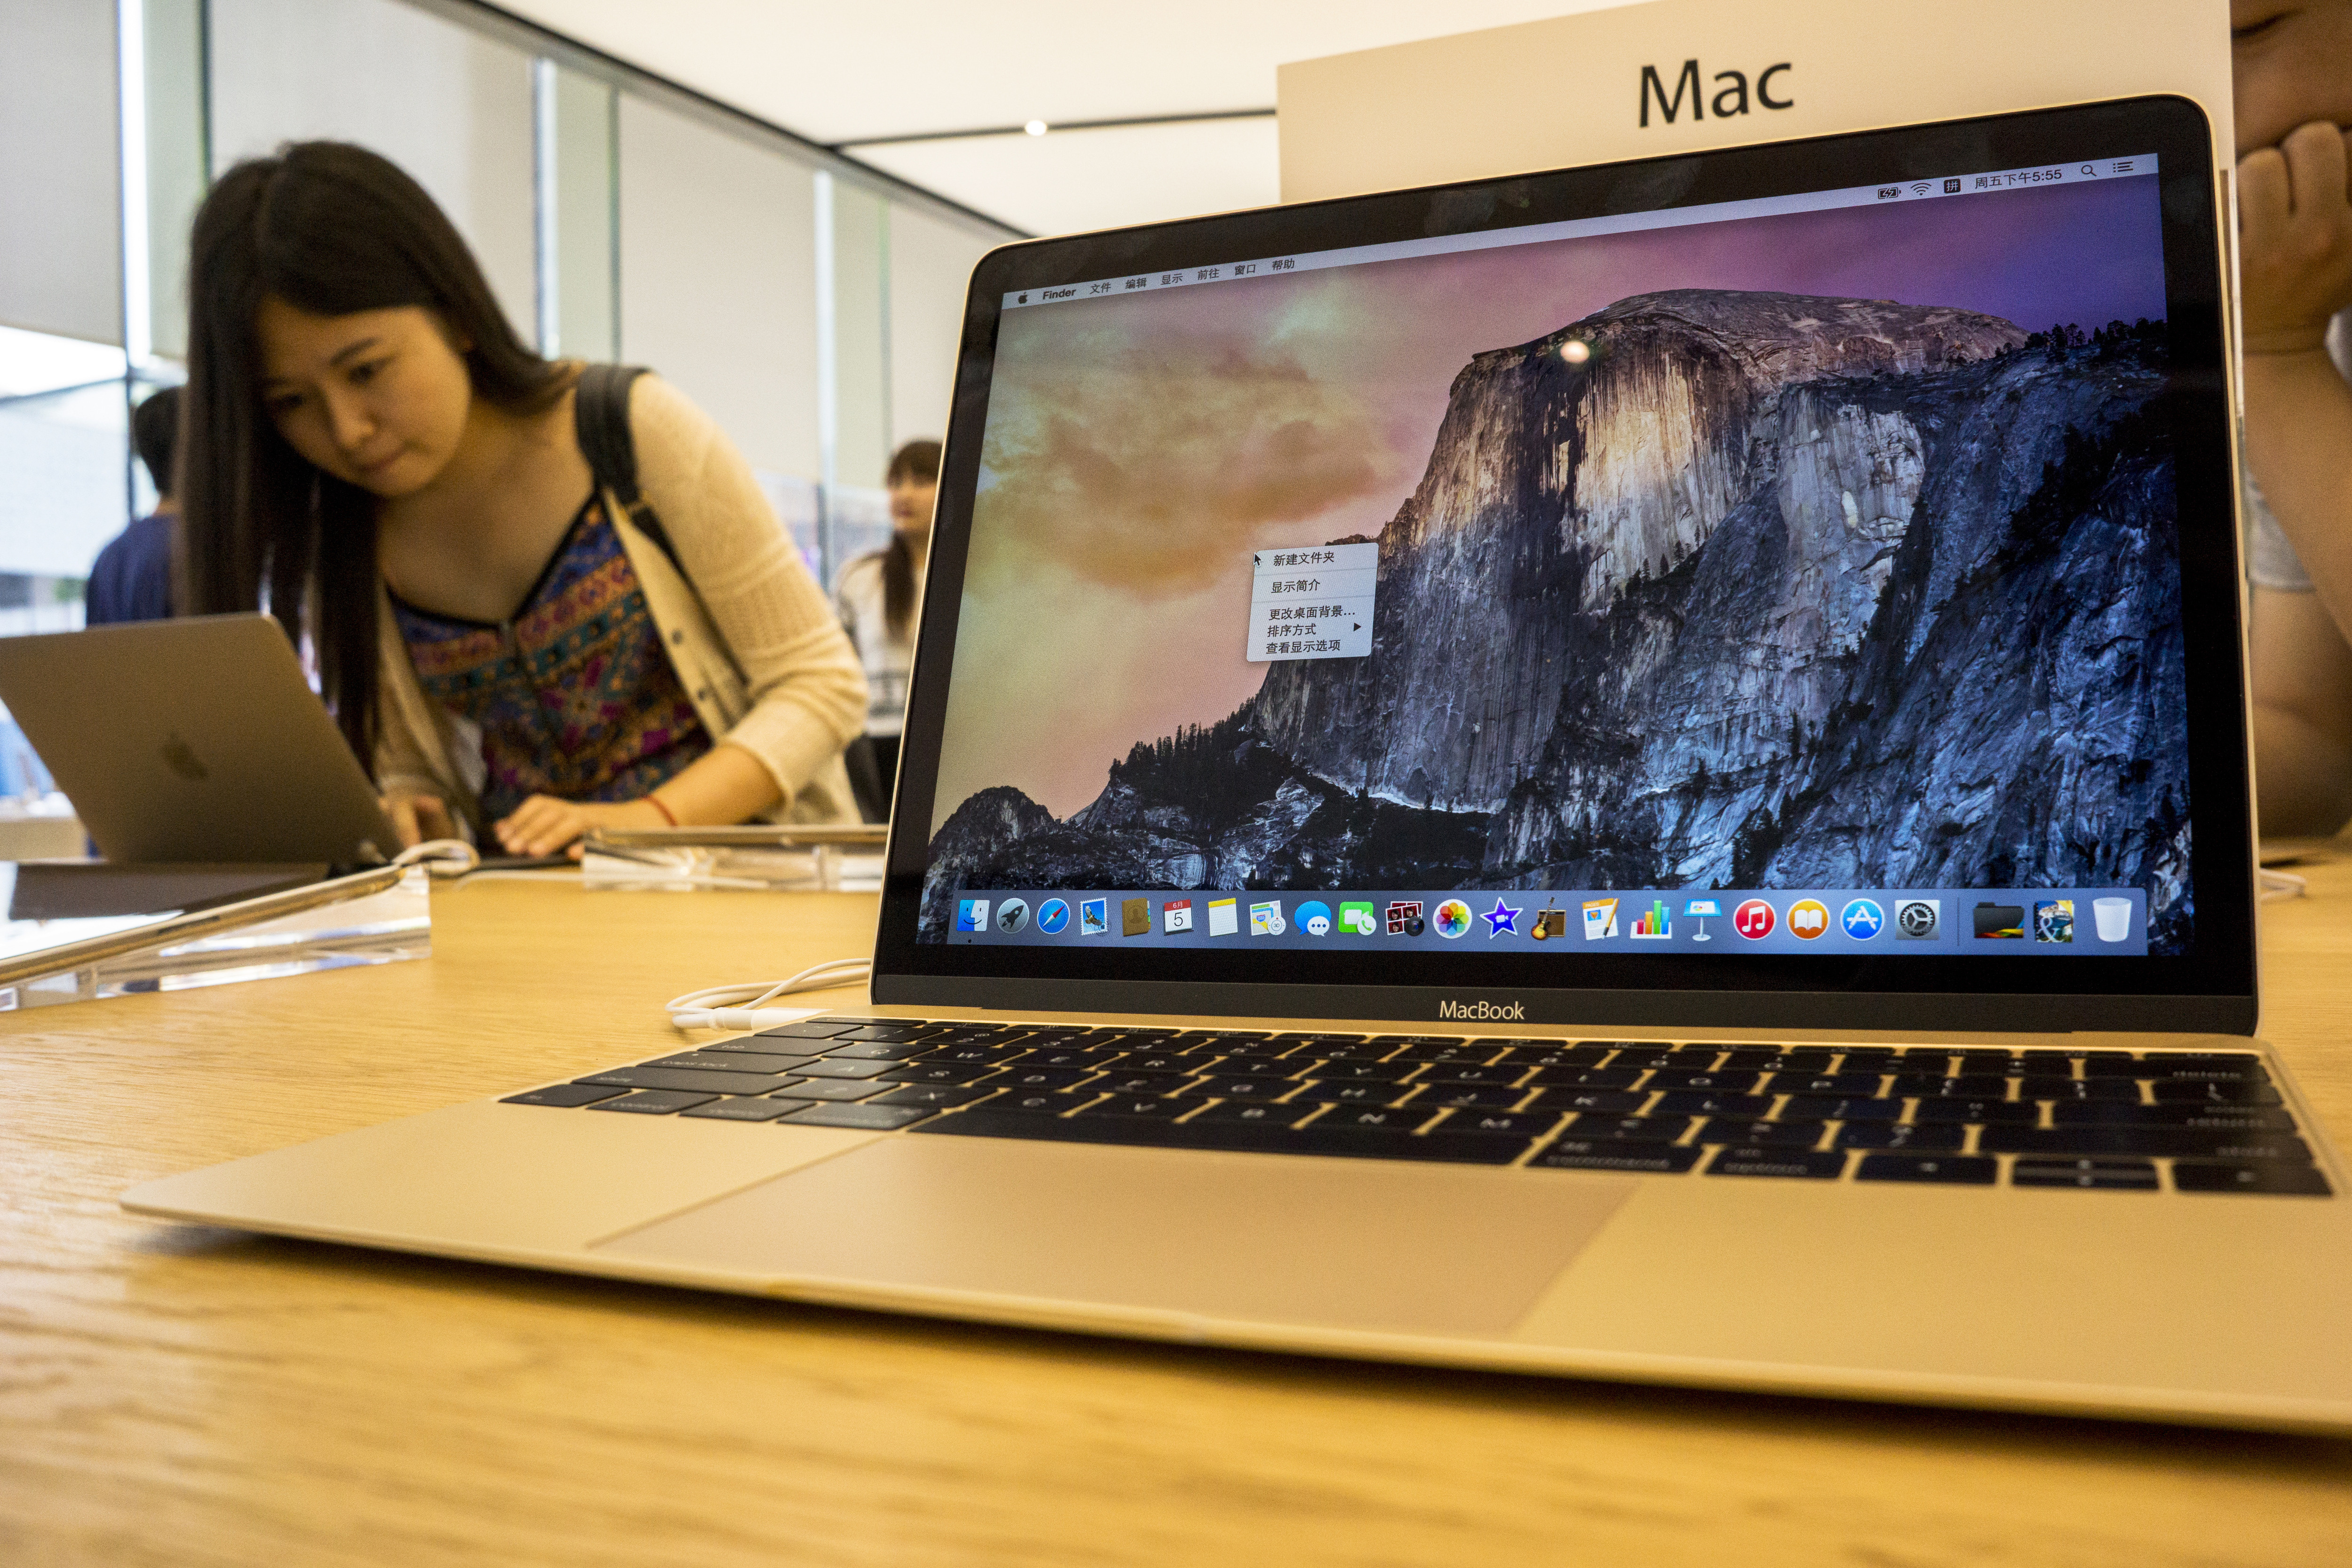 Chinese customers are experiencing and choosing Apple's products in an Apple store beside West lake in Hangzhou, which is the biggest Apple store in Asia.